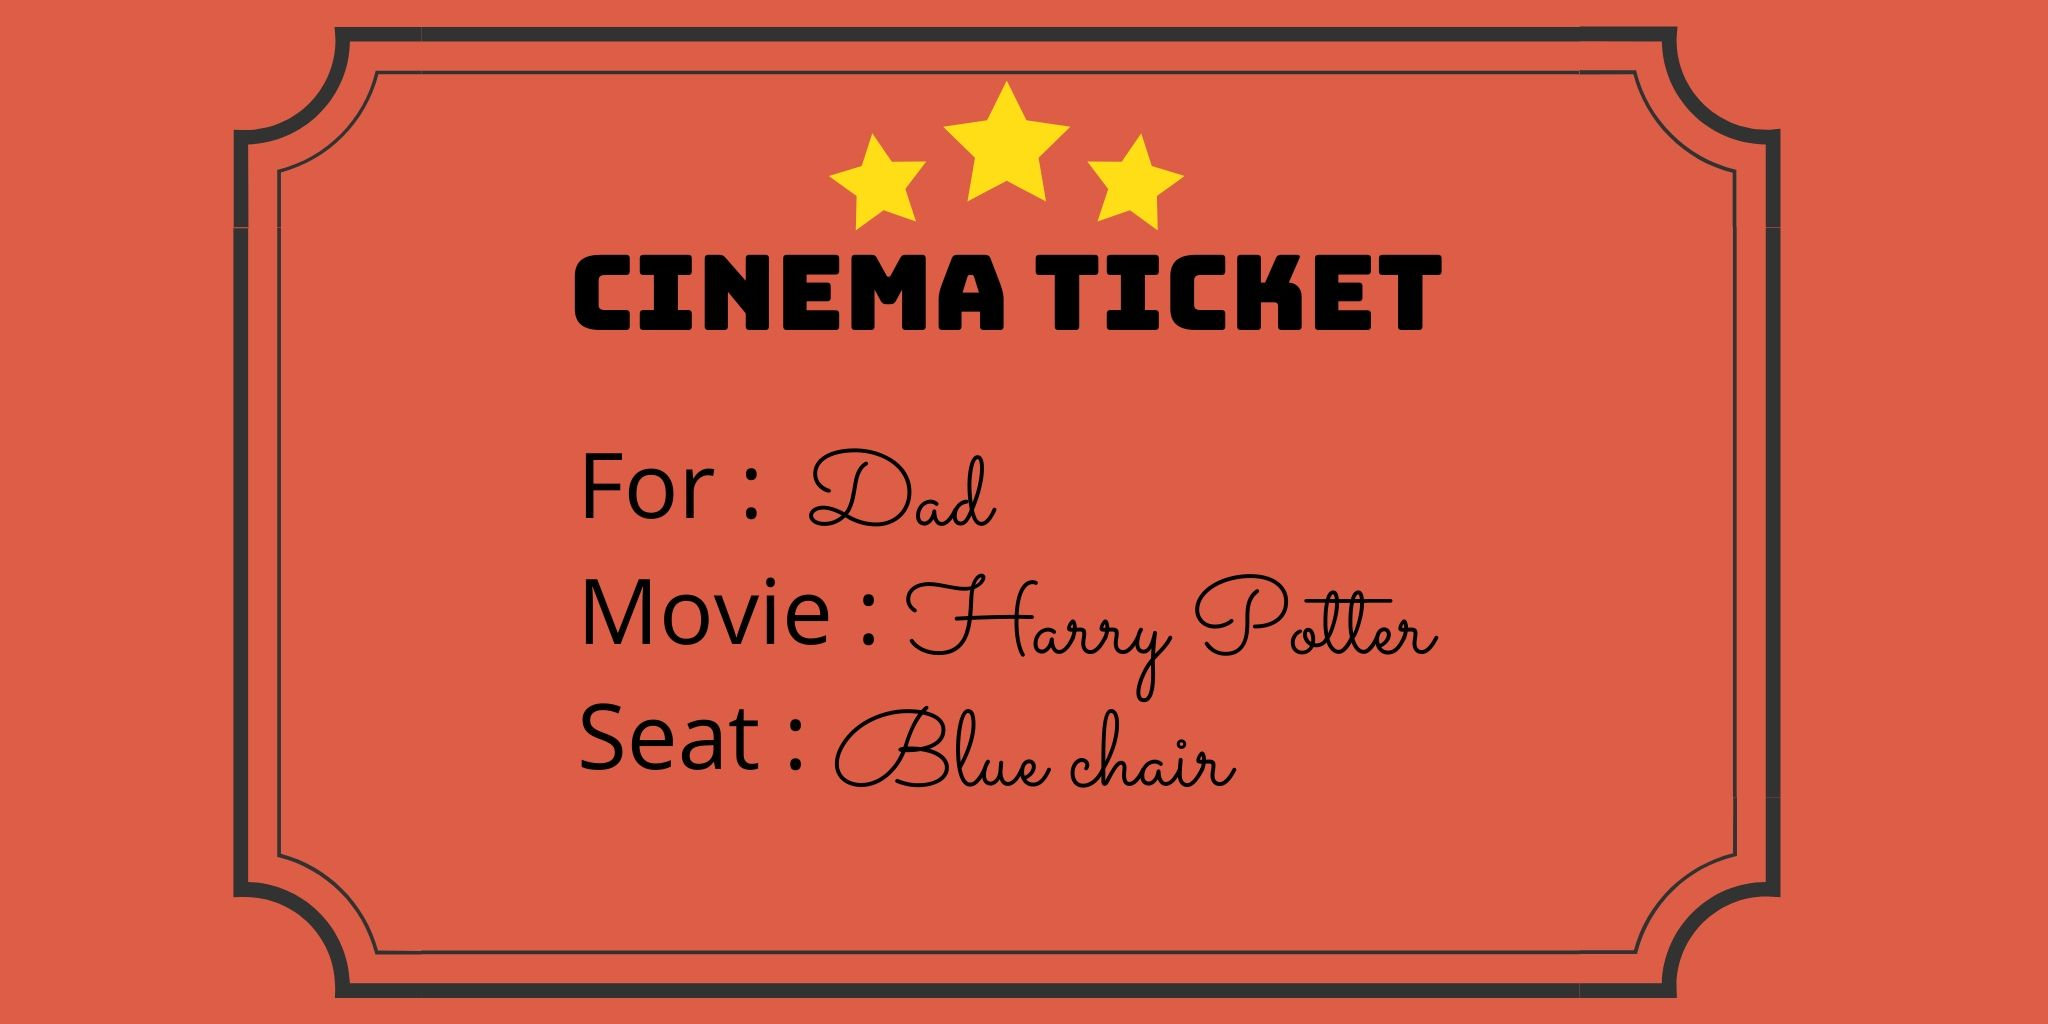 ticket de cine